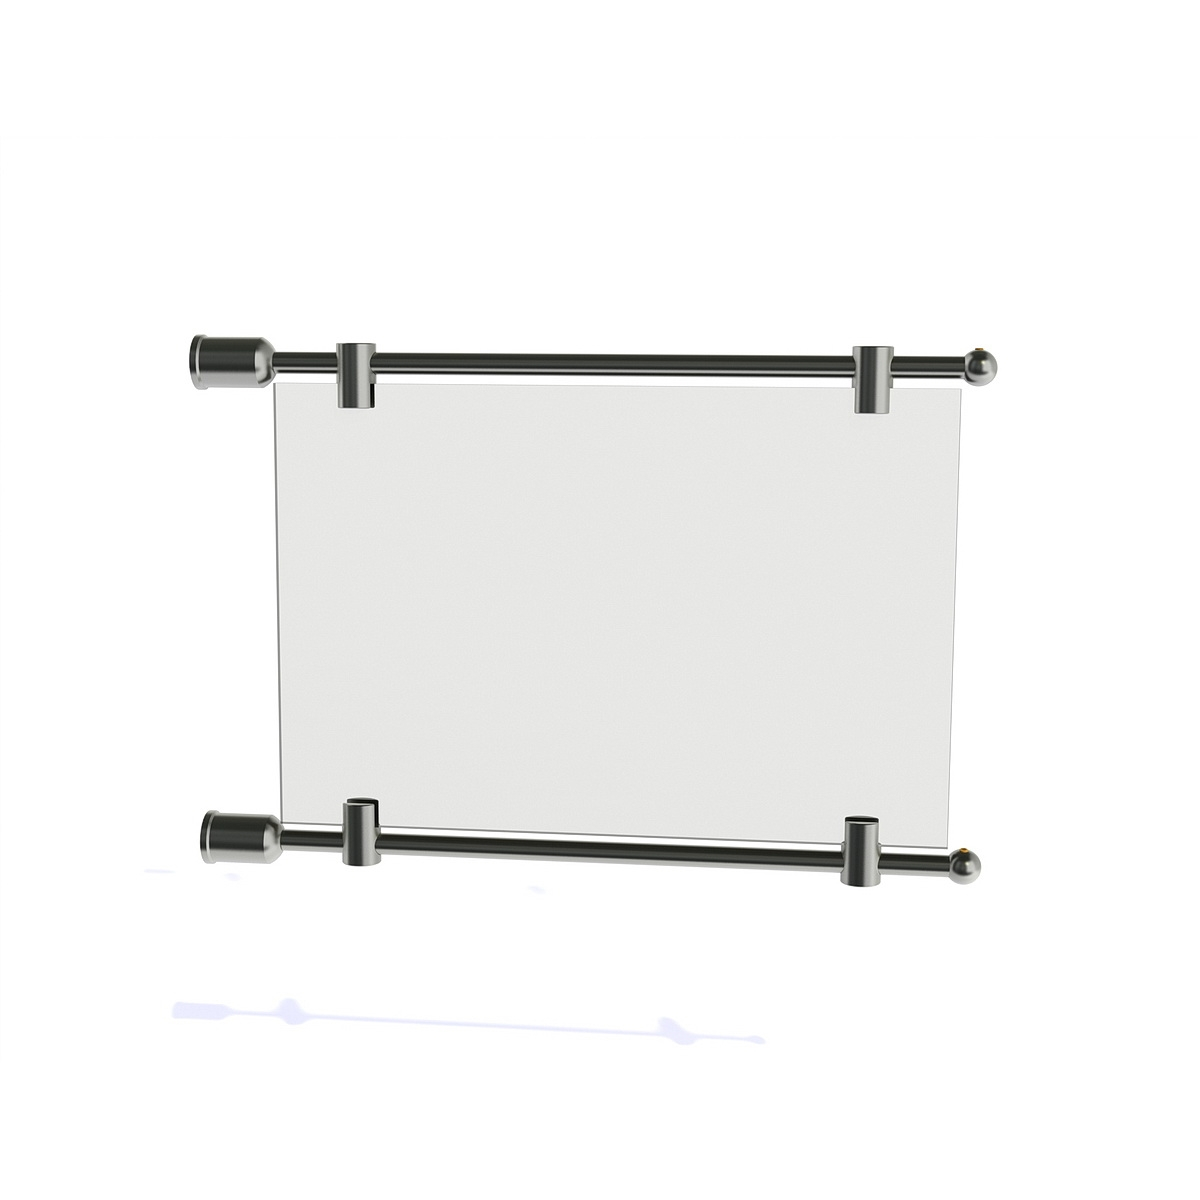 "3/8'' Diameter Rod Projecting Sign, Aluminum Clear Anodized, 13 13/16"" including the wall mounts. Material thickness up to 5/16''"